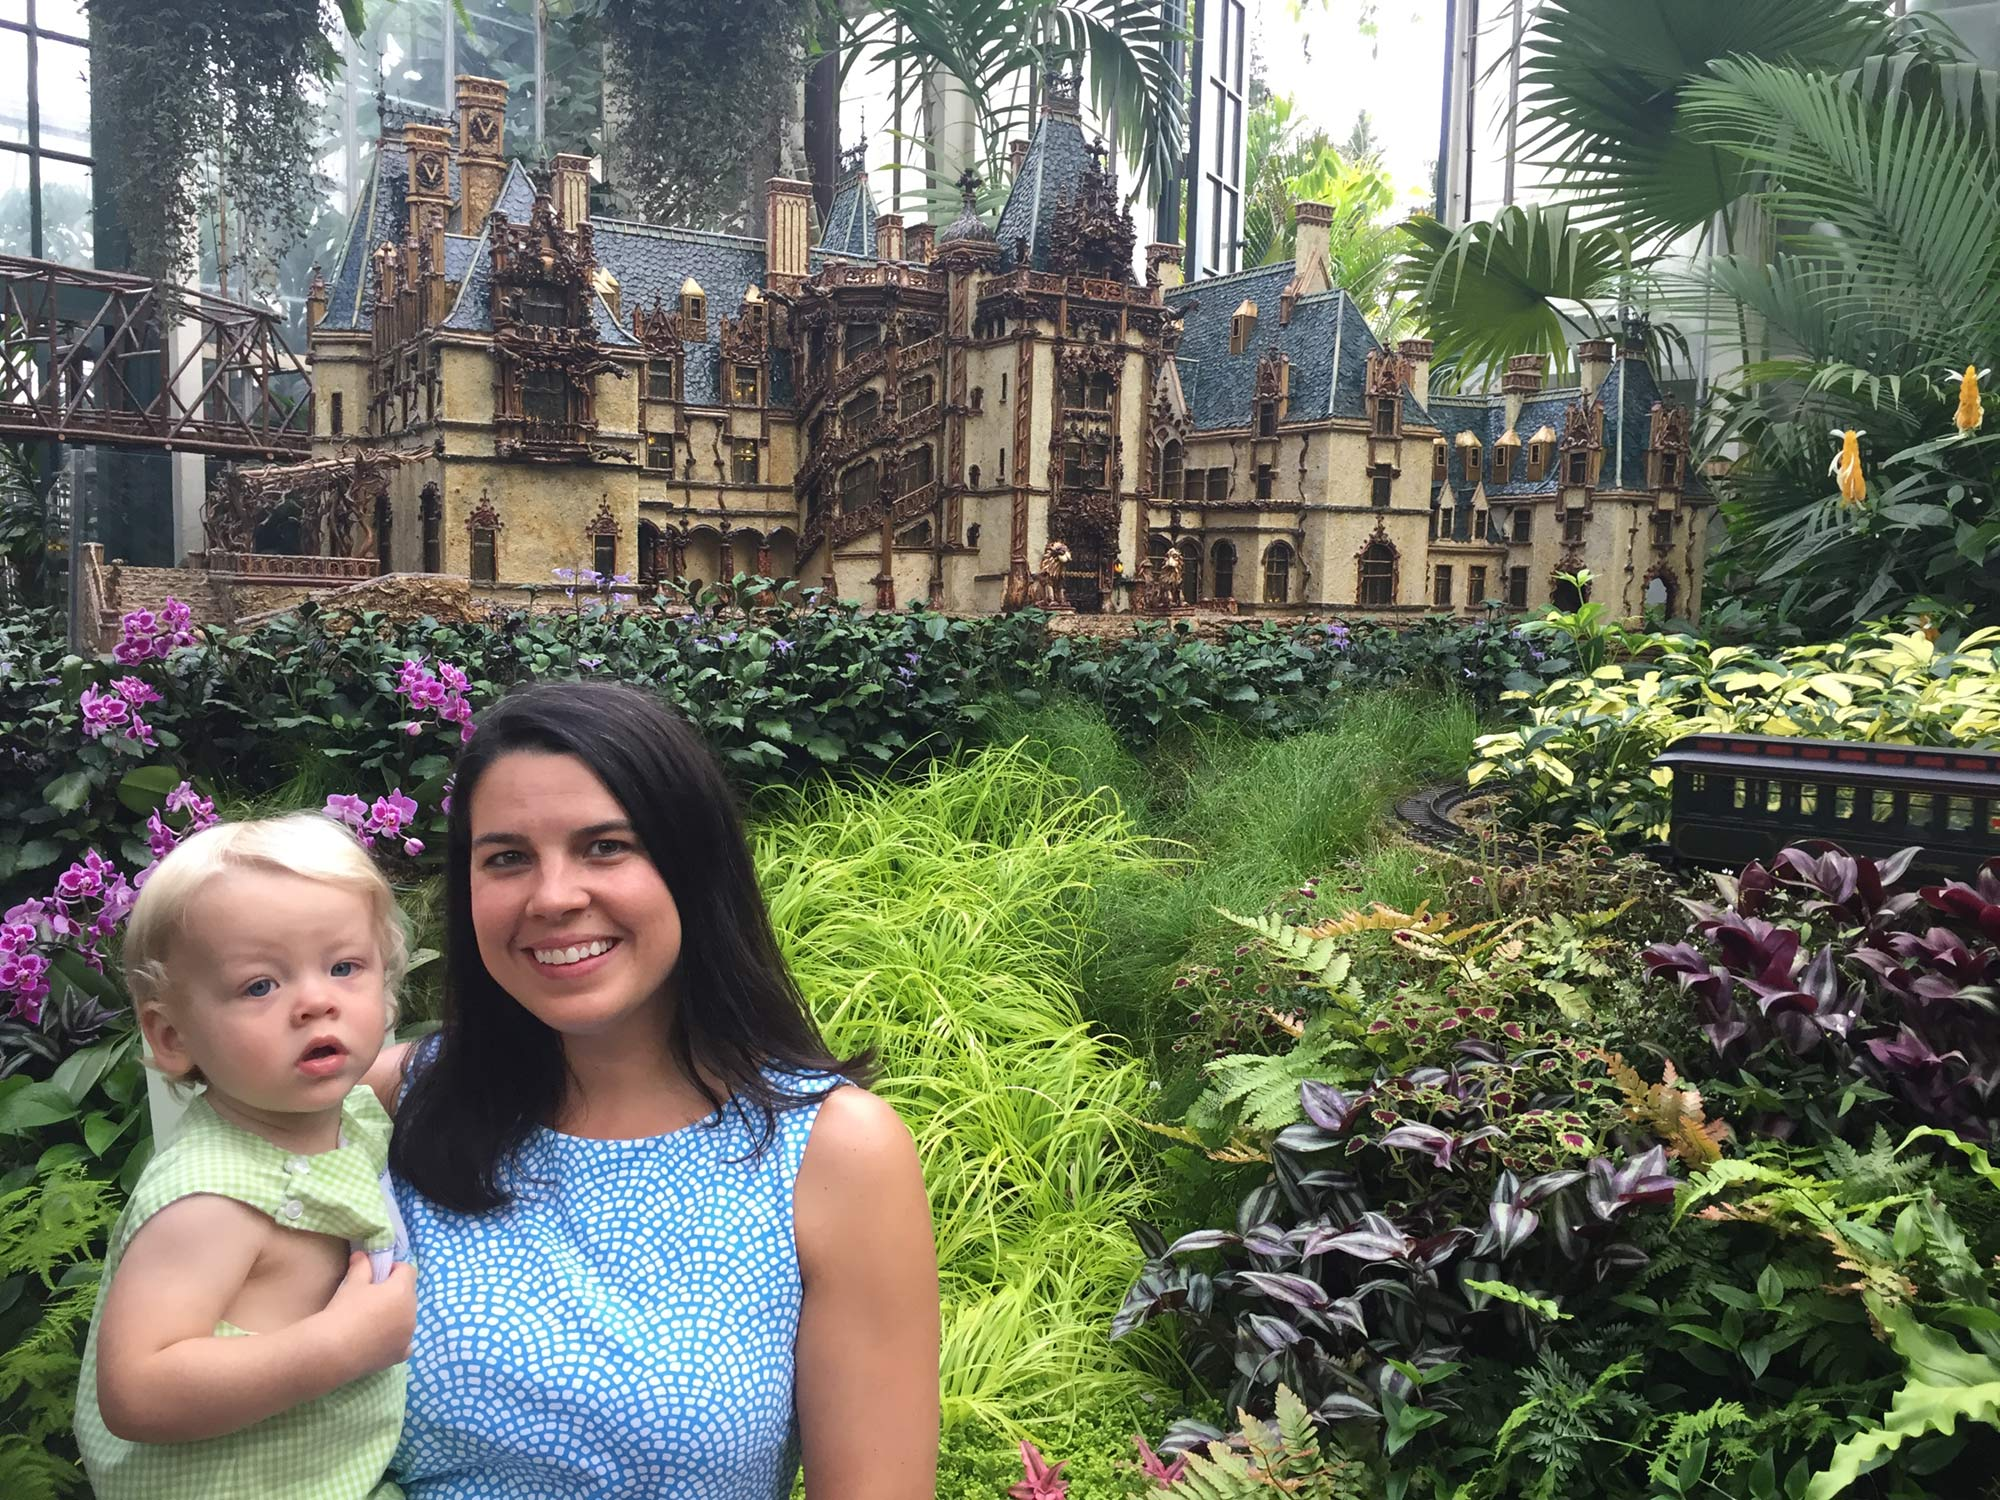 Michaela Schmidlin, MPM '18, and son William at the Biltmore Gardens Railway exhibit. William was born while Michaela was completing the program.